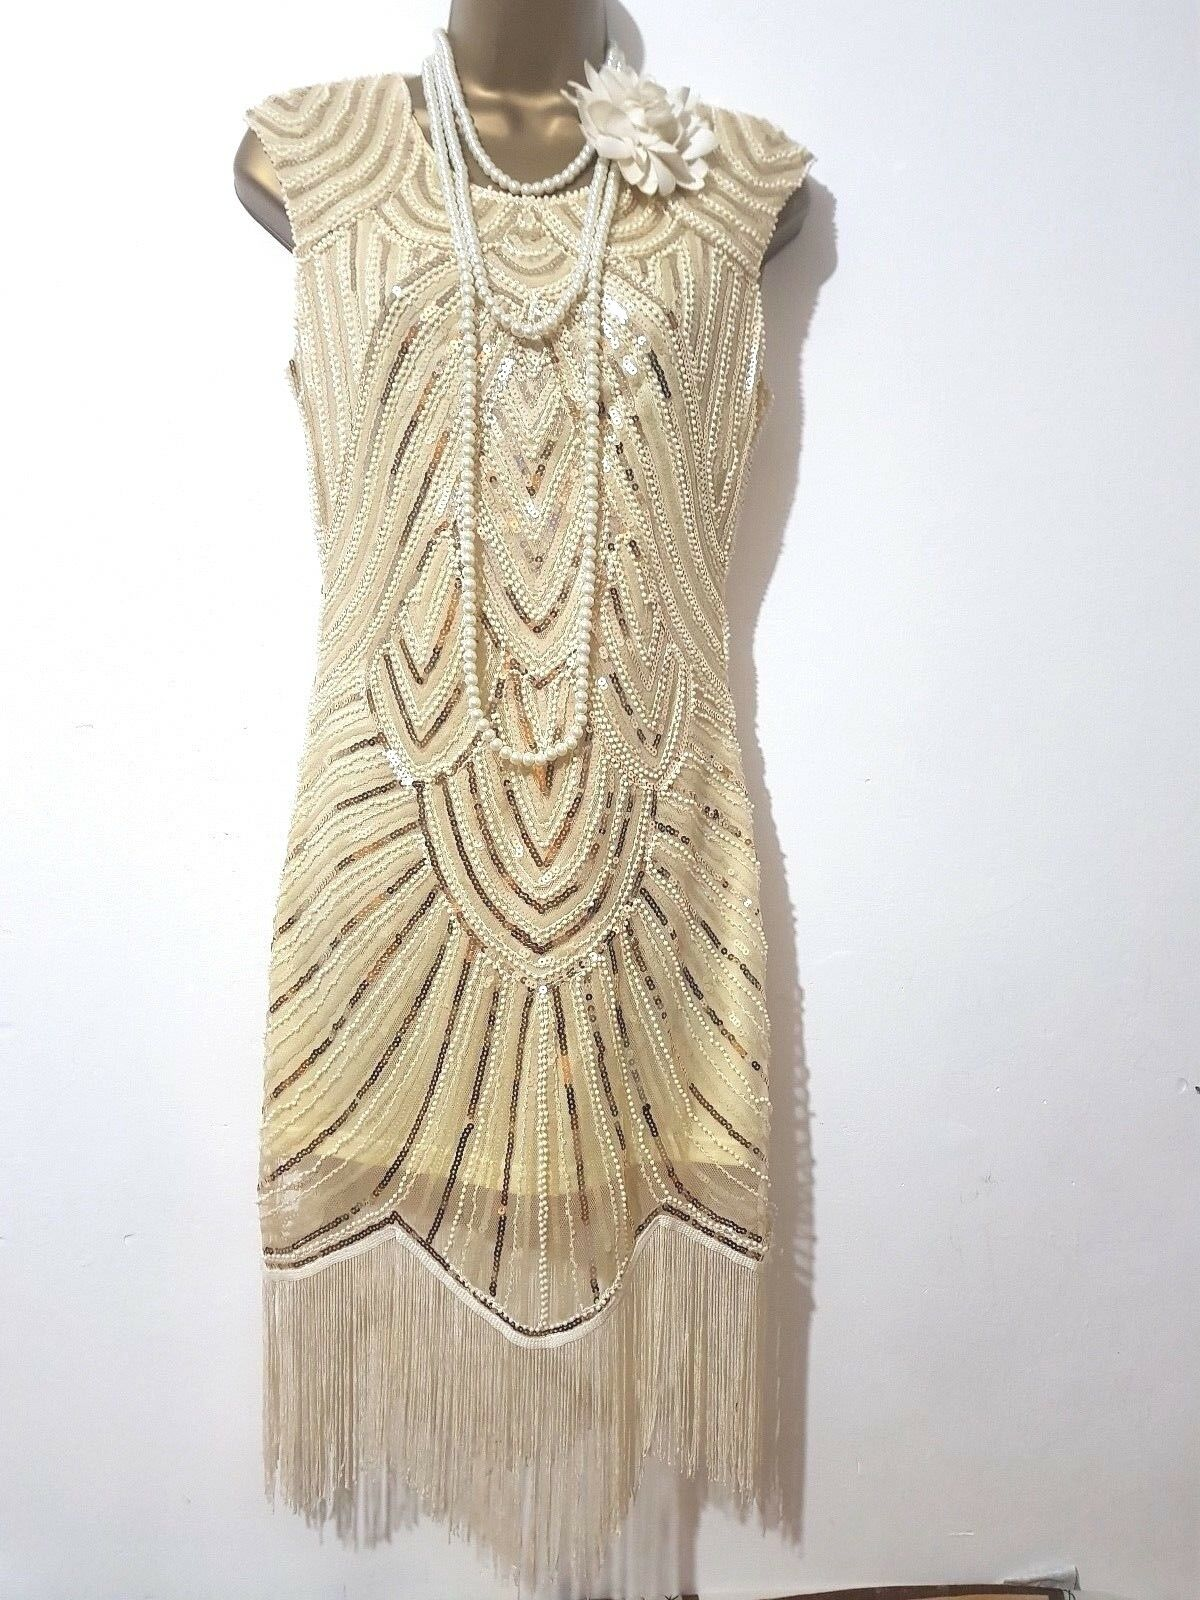 VINTAGE 20'S GATSBY FLAPPER CHARLESTON FRINGE TASSLE EMBELLISHED DRESS UK S